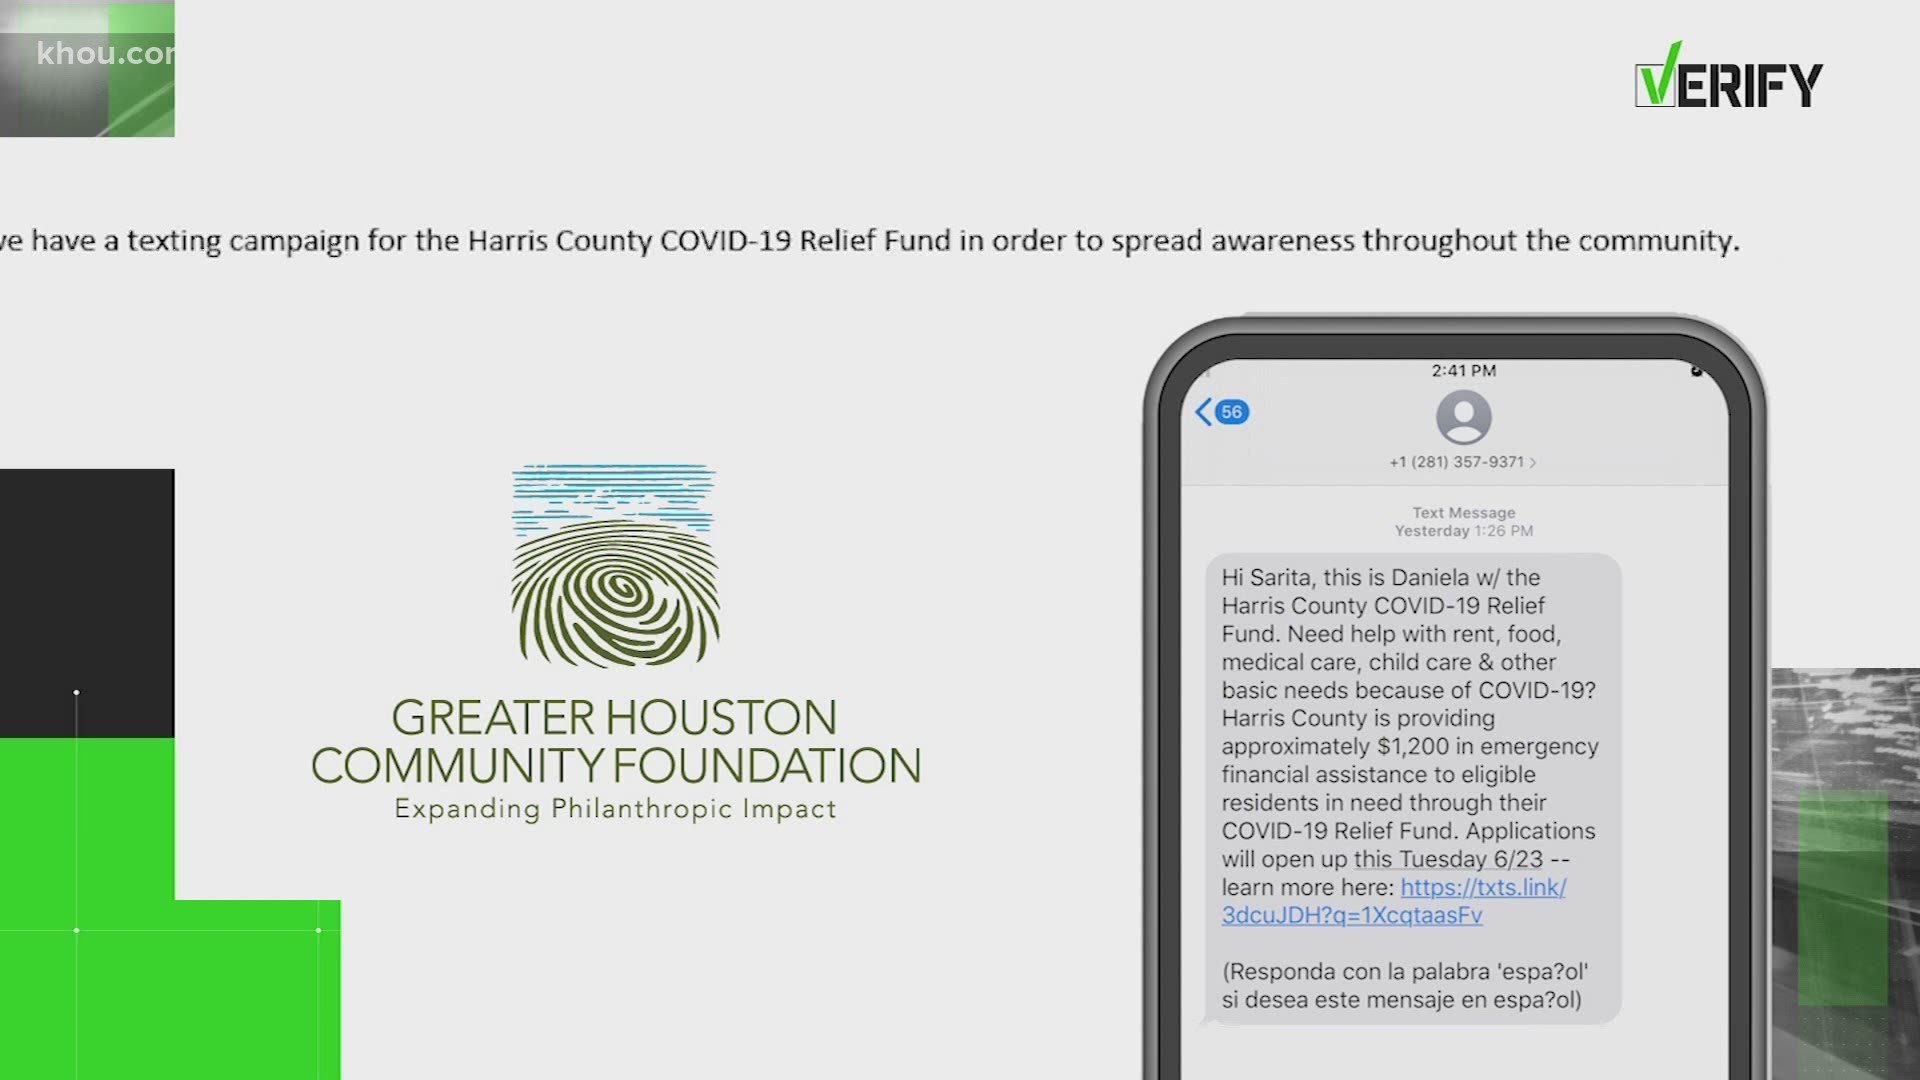 Mass Texts About Harris County Covid 19 Relief Fund Are Legit Khou Com